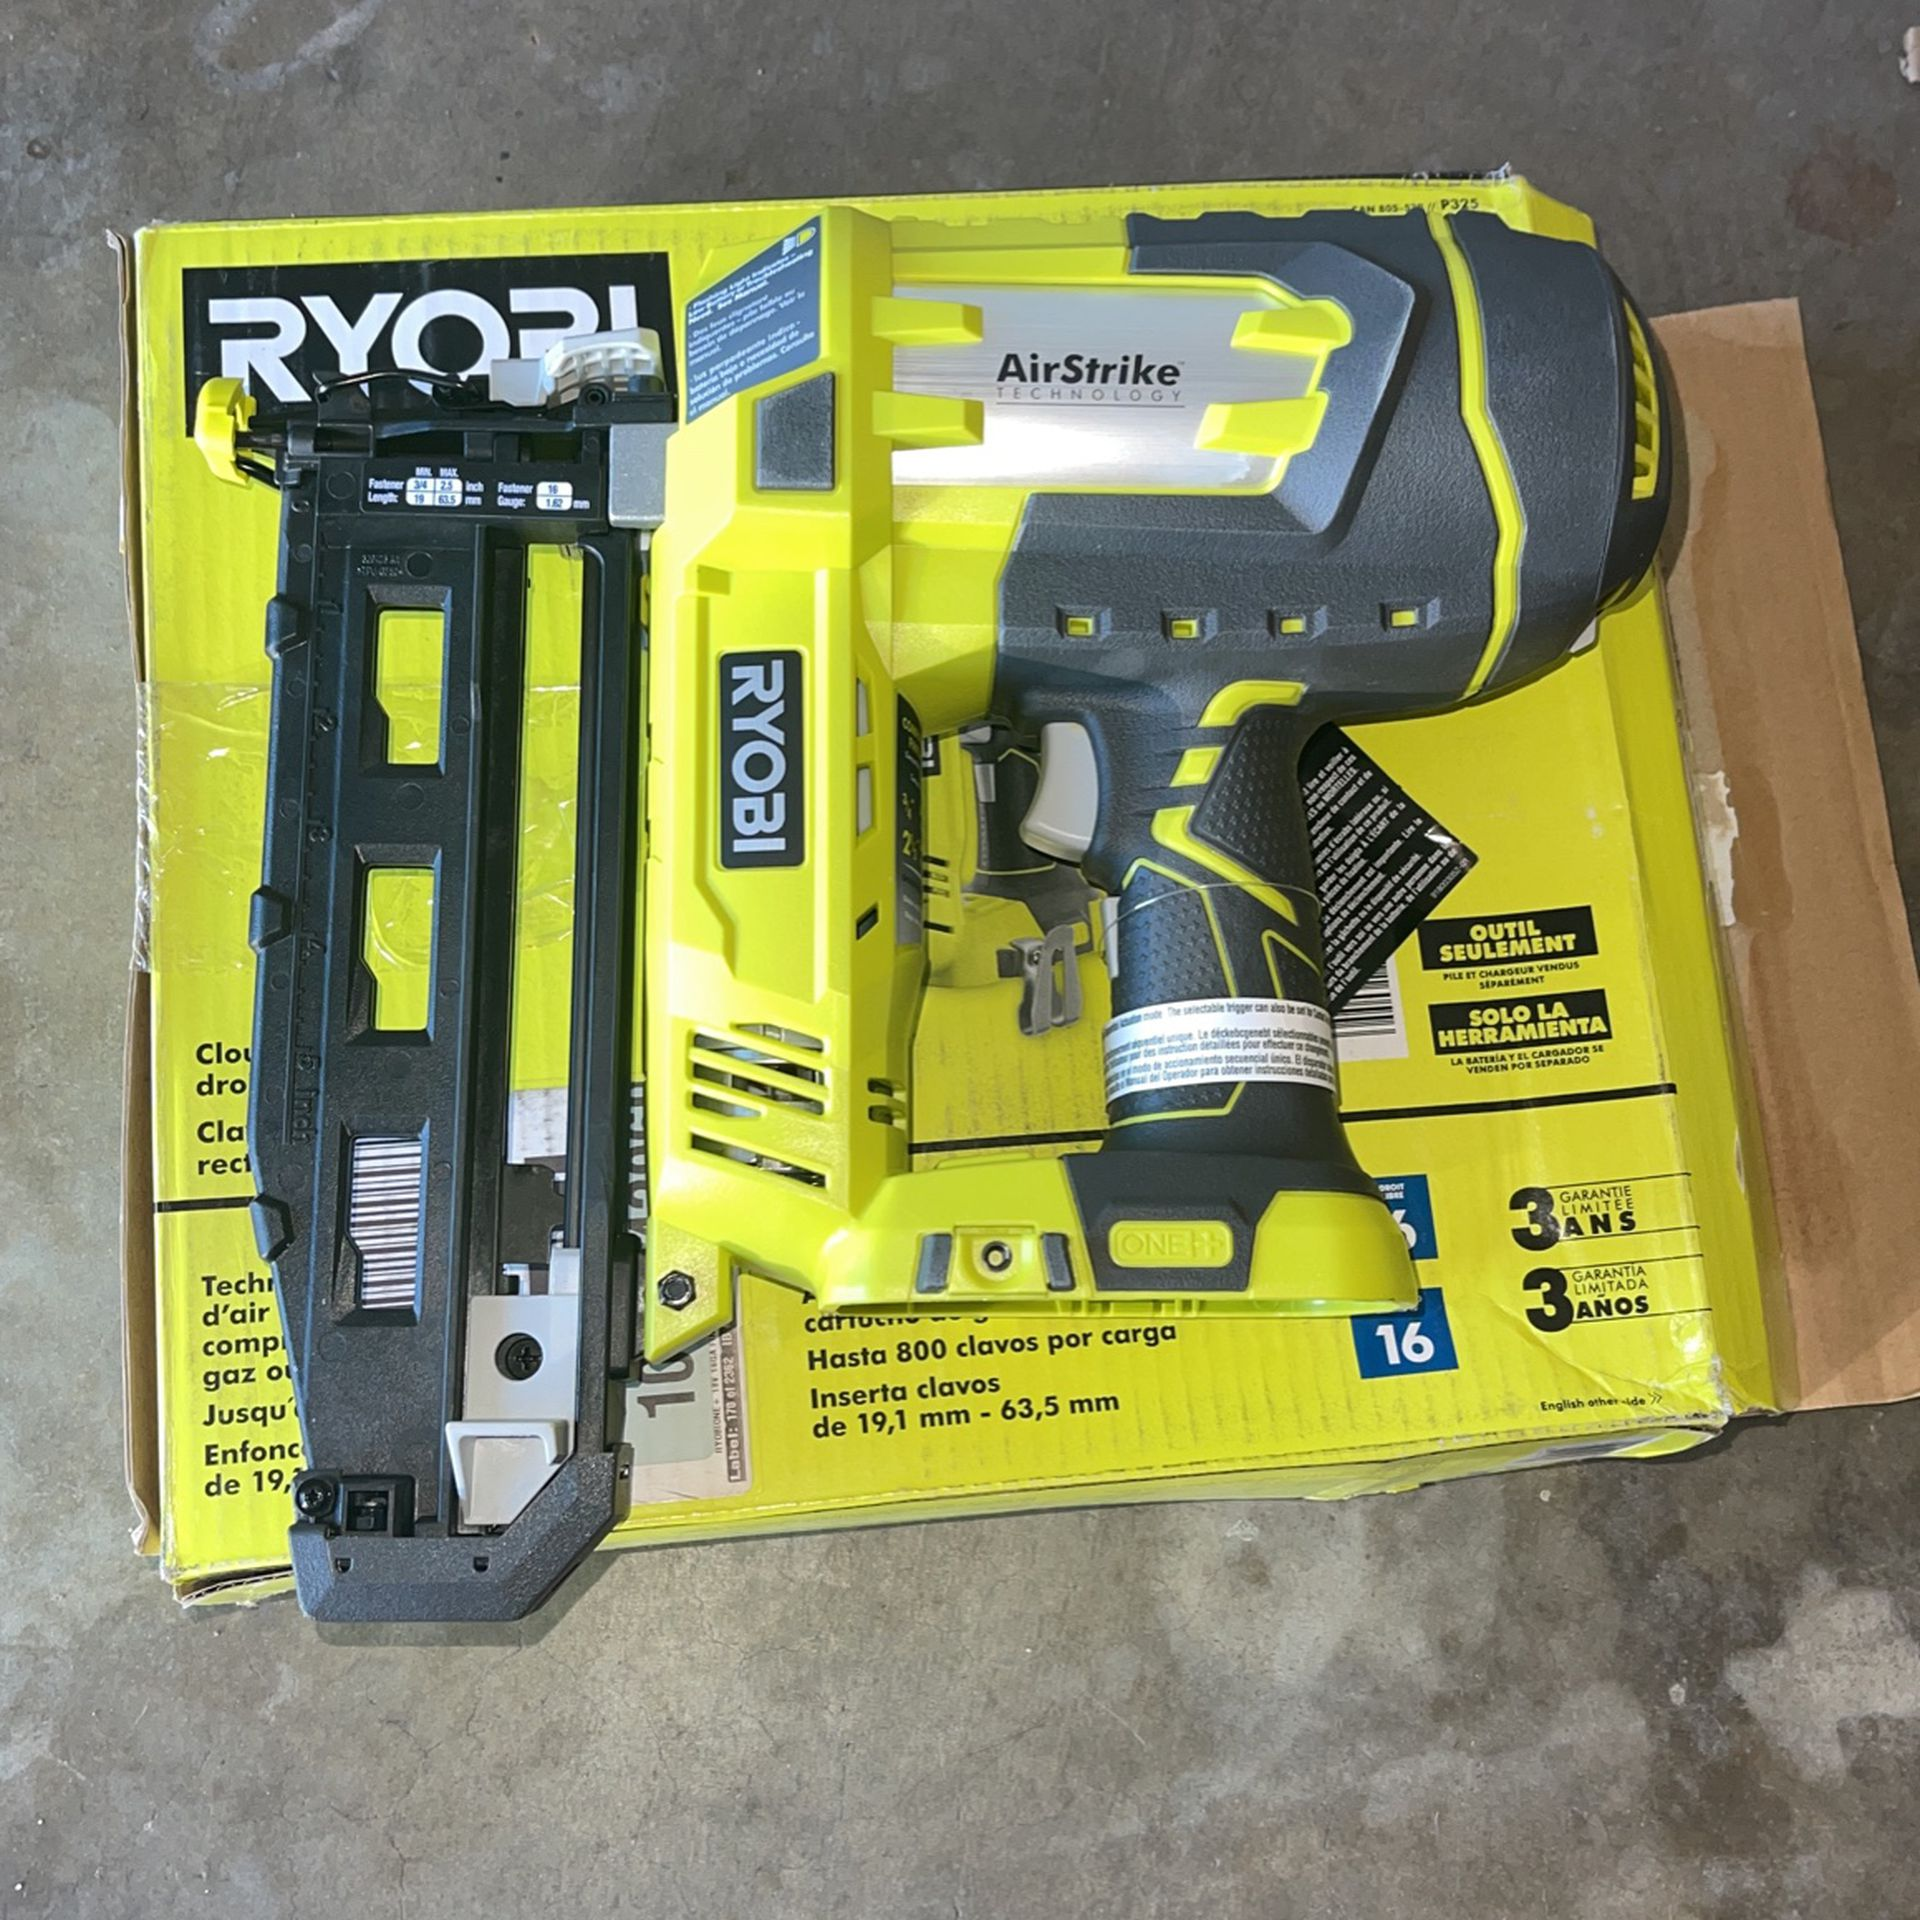 RYOBI ONE+ 18V Cordless AirStrike 16-Gauge 2-1/2 in. Straight Finish Nailer (Tool Only) with Sample Nails